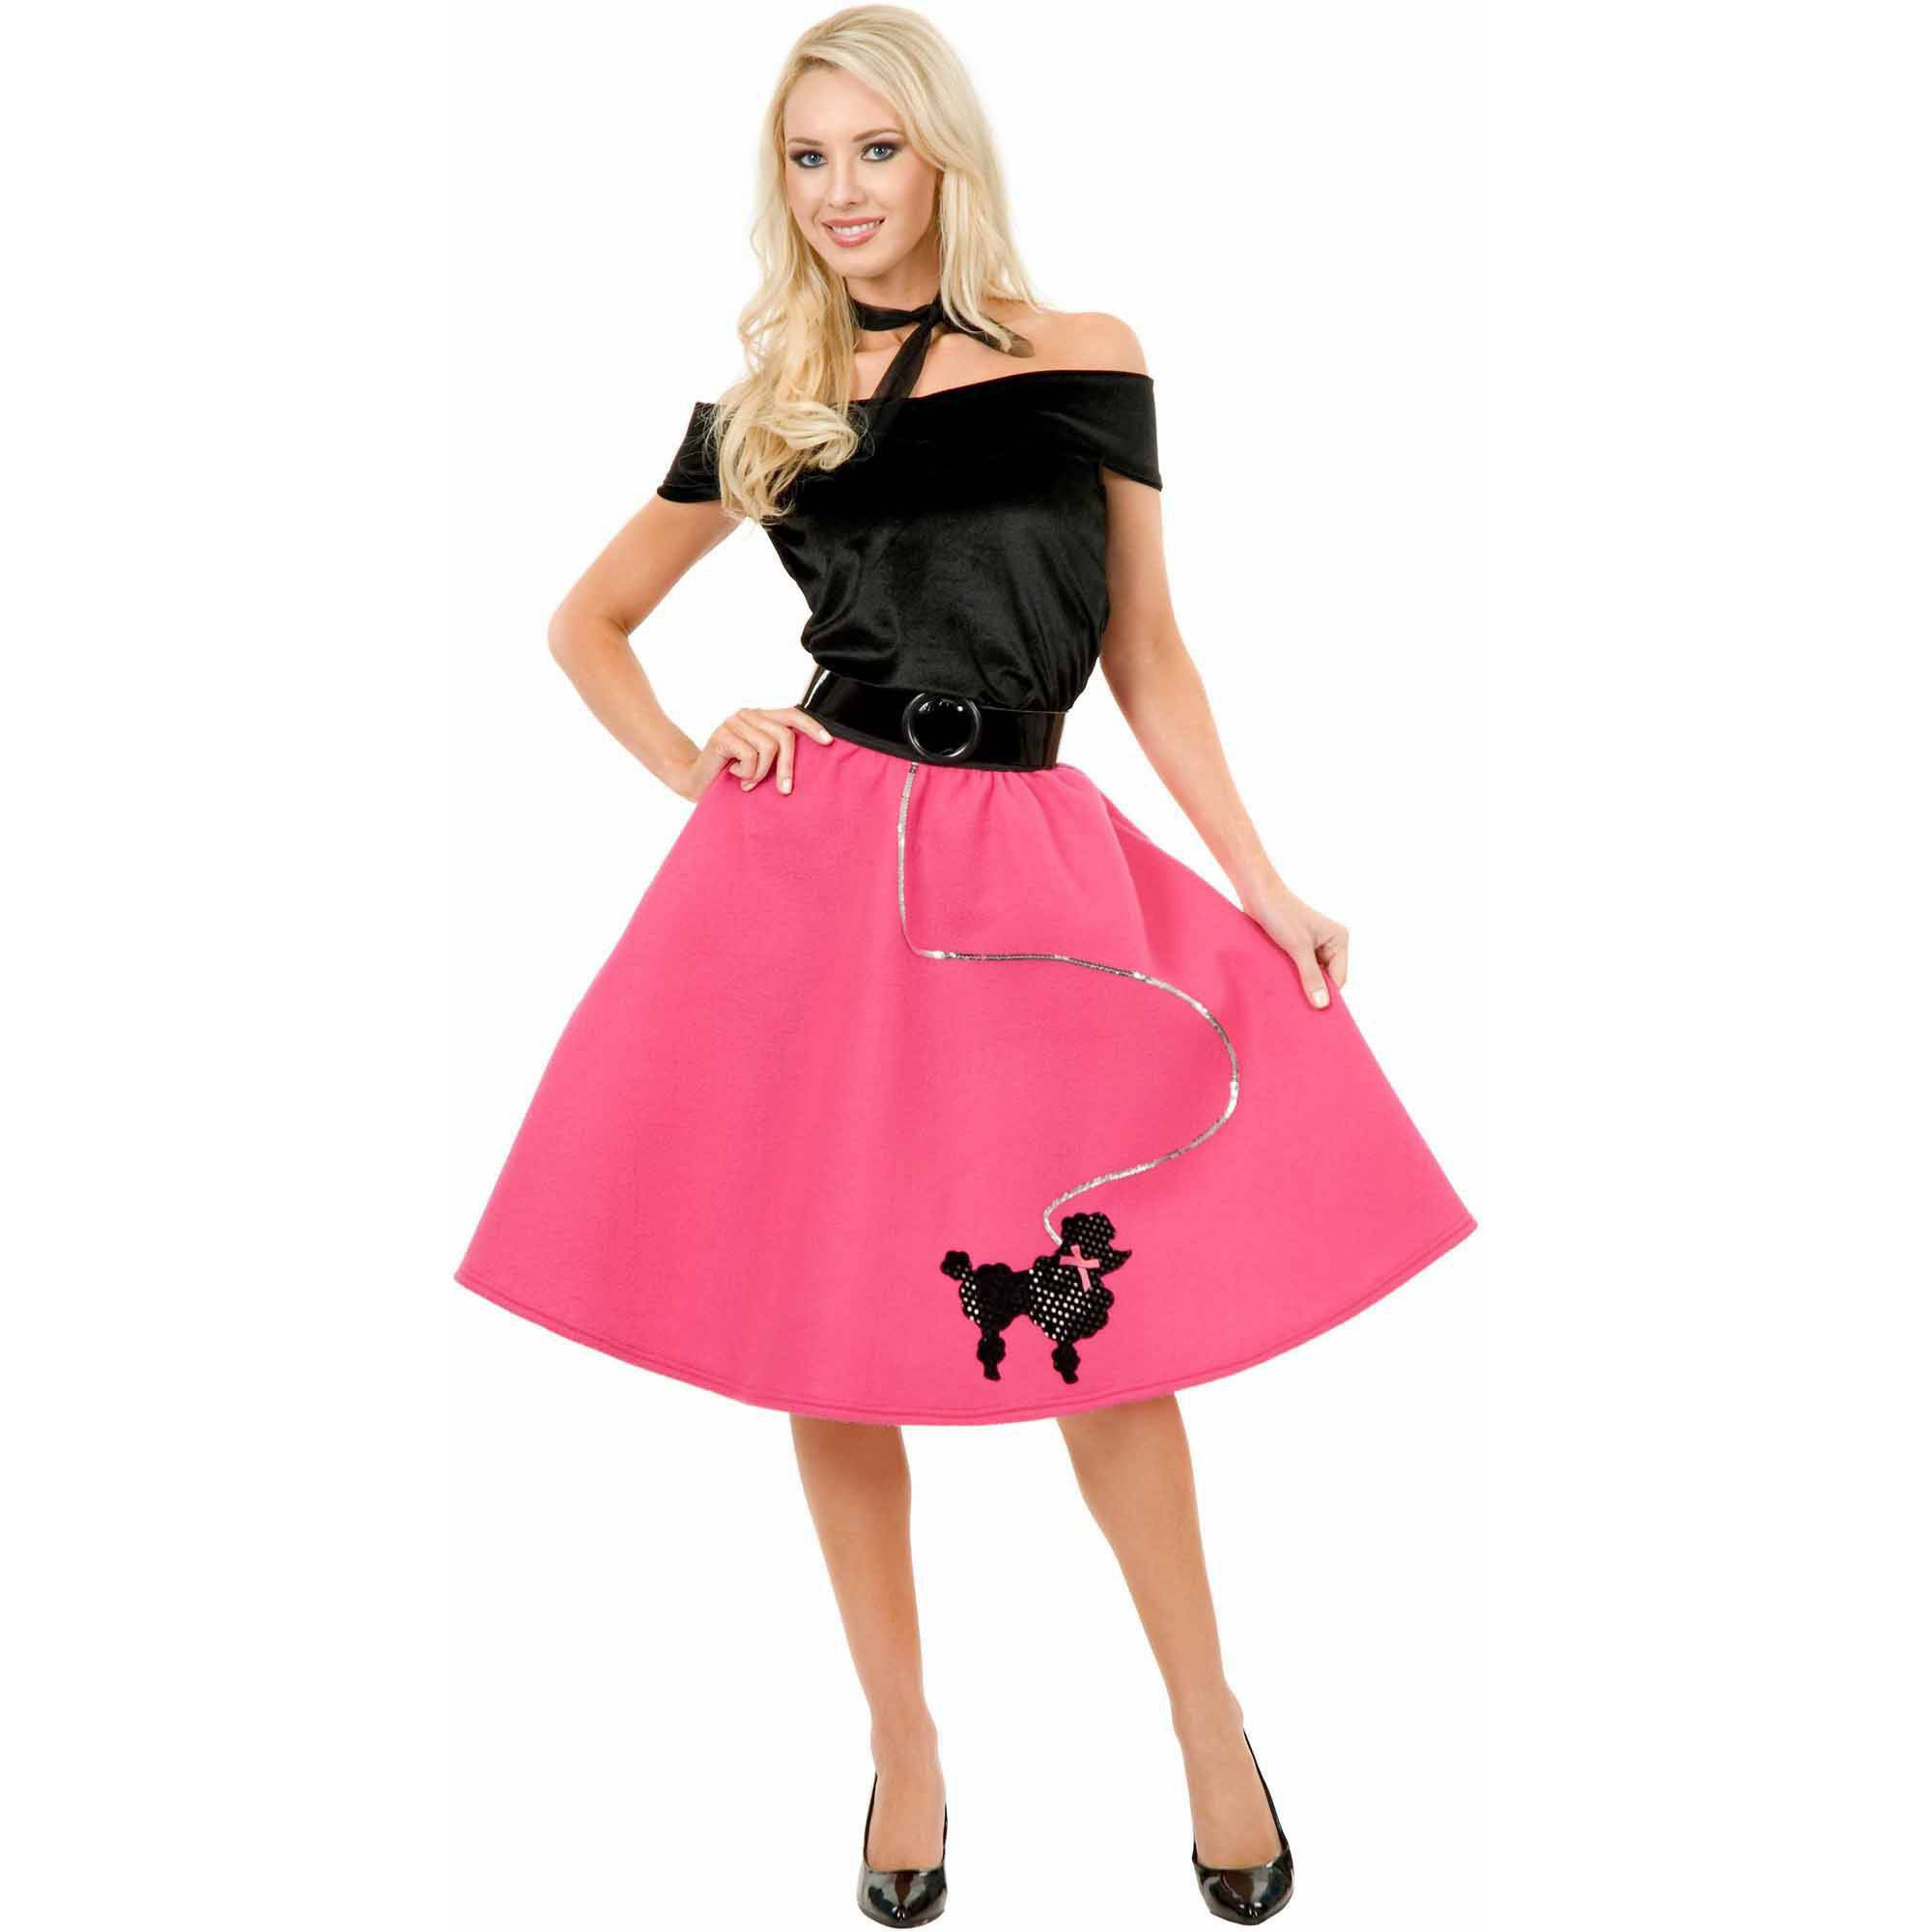 Poodle Skirt, Top and Scarf Women's Adult Halloween Costume